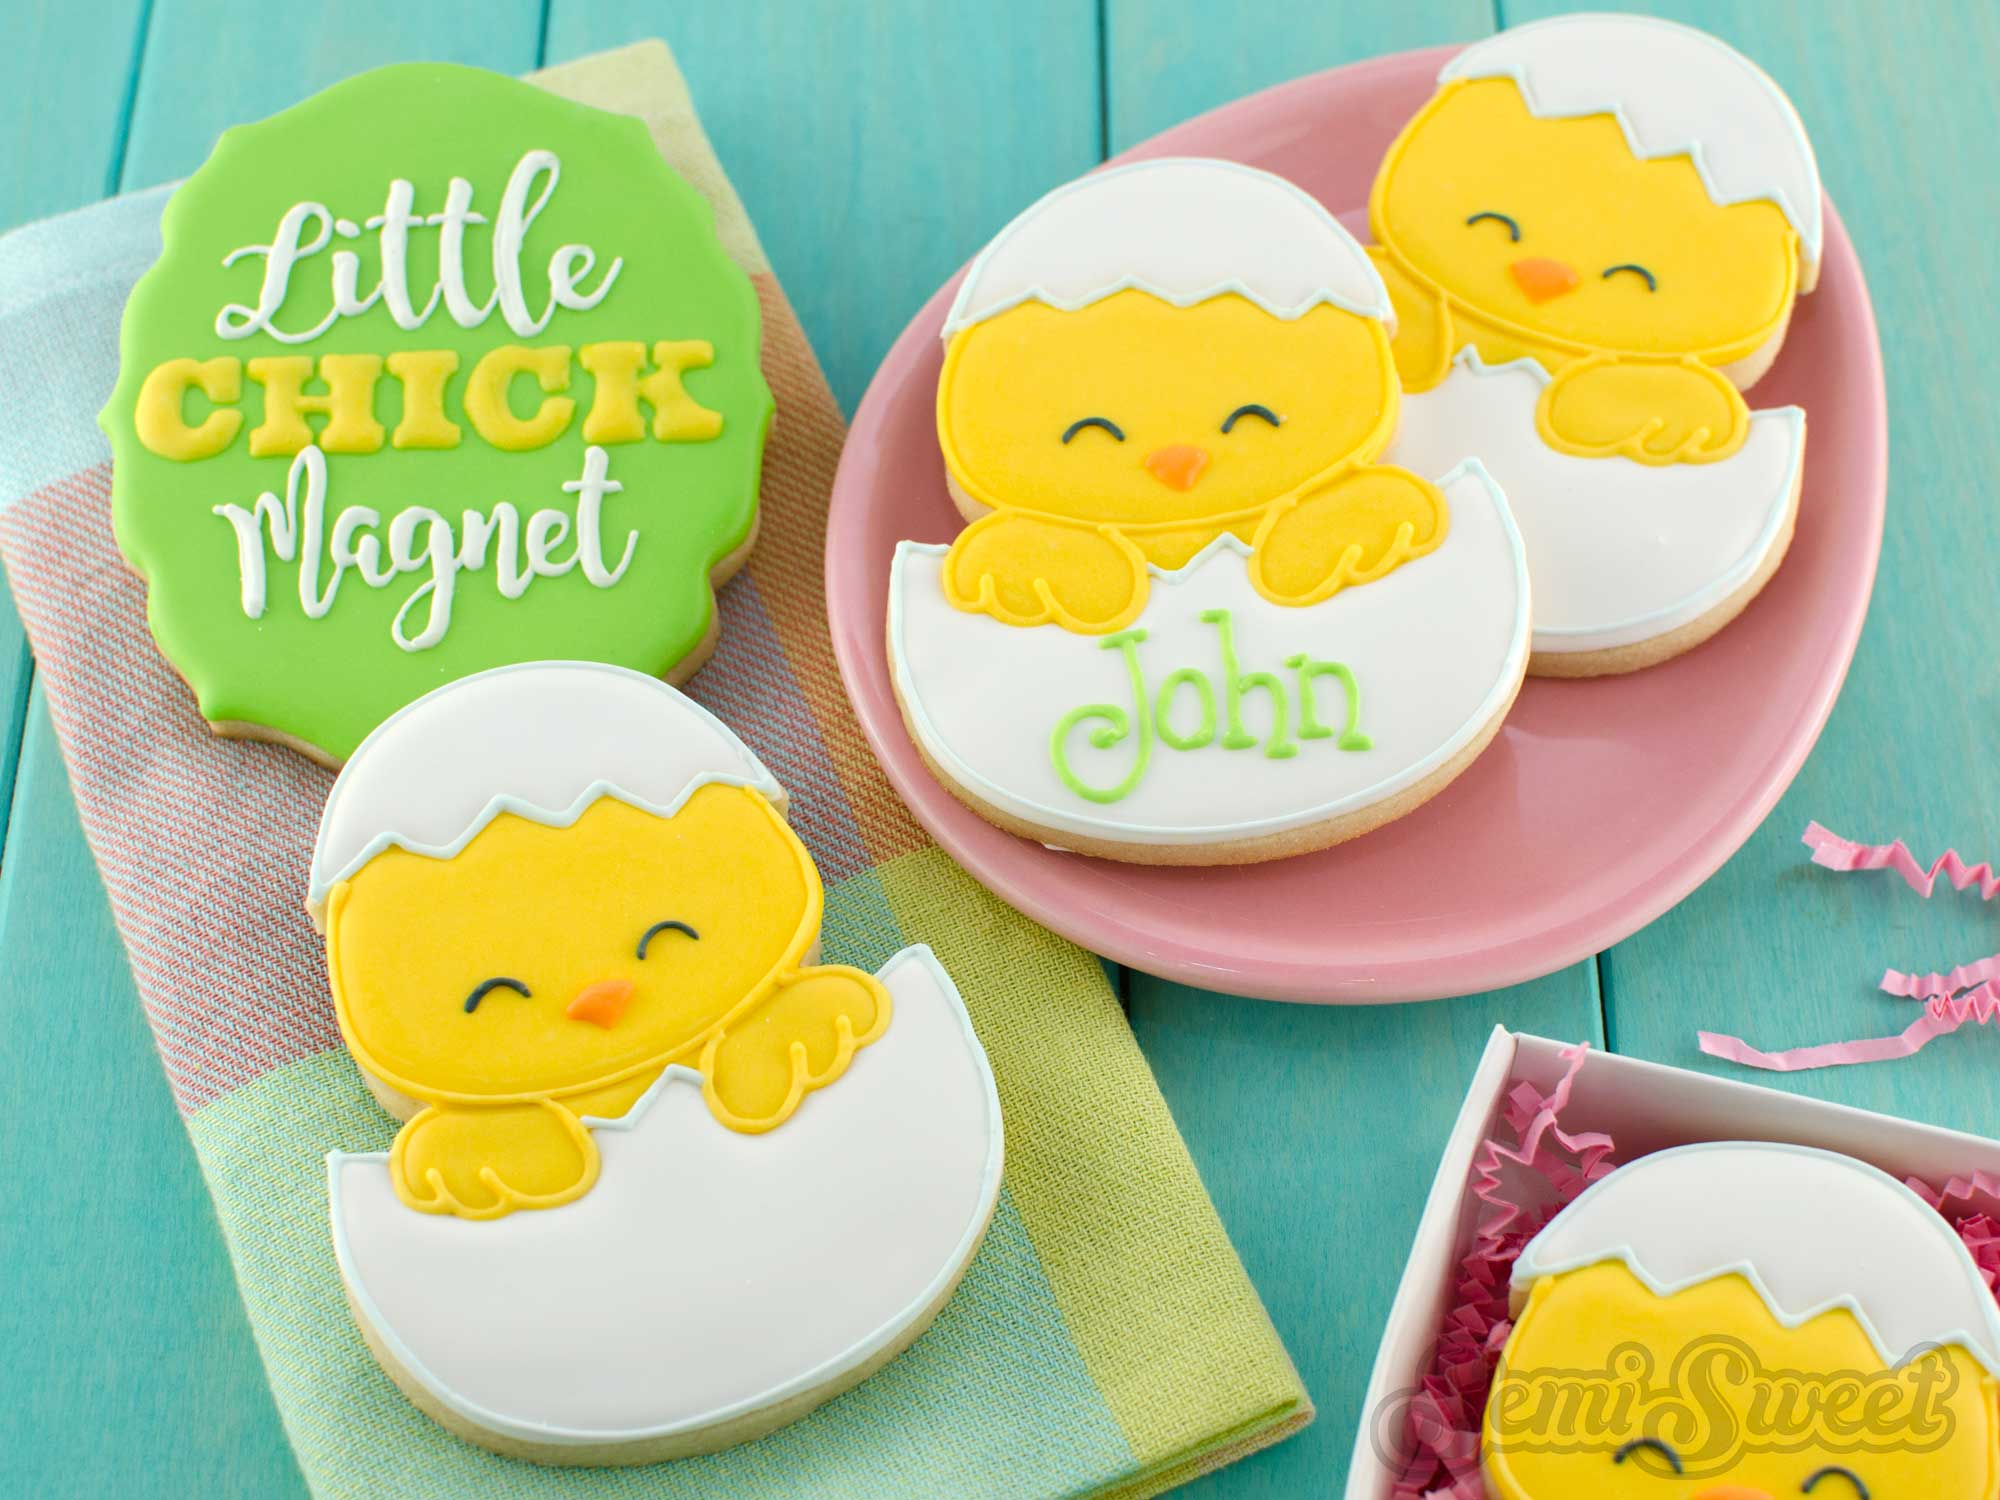 How to Make Chick in Egg Cookies